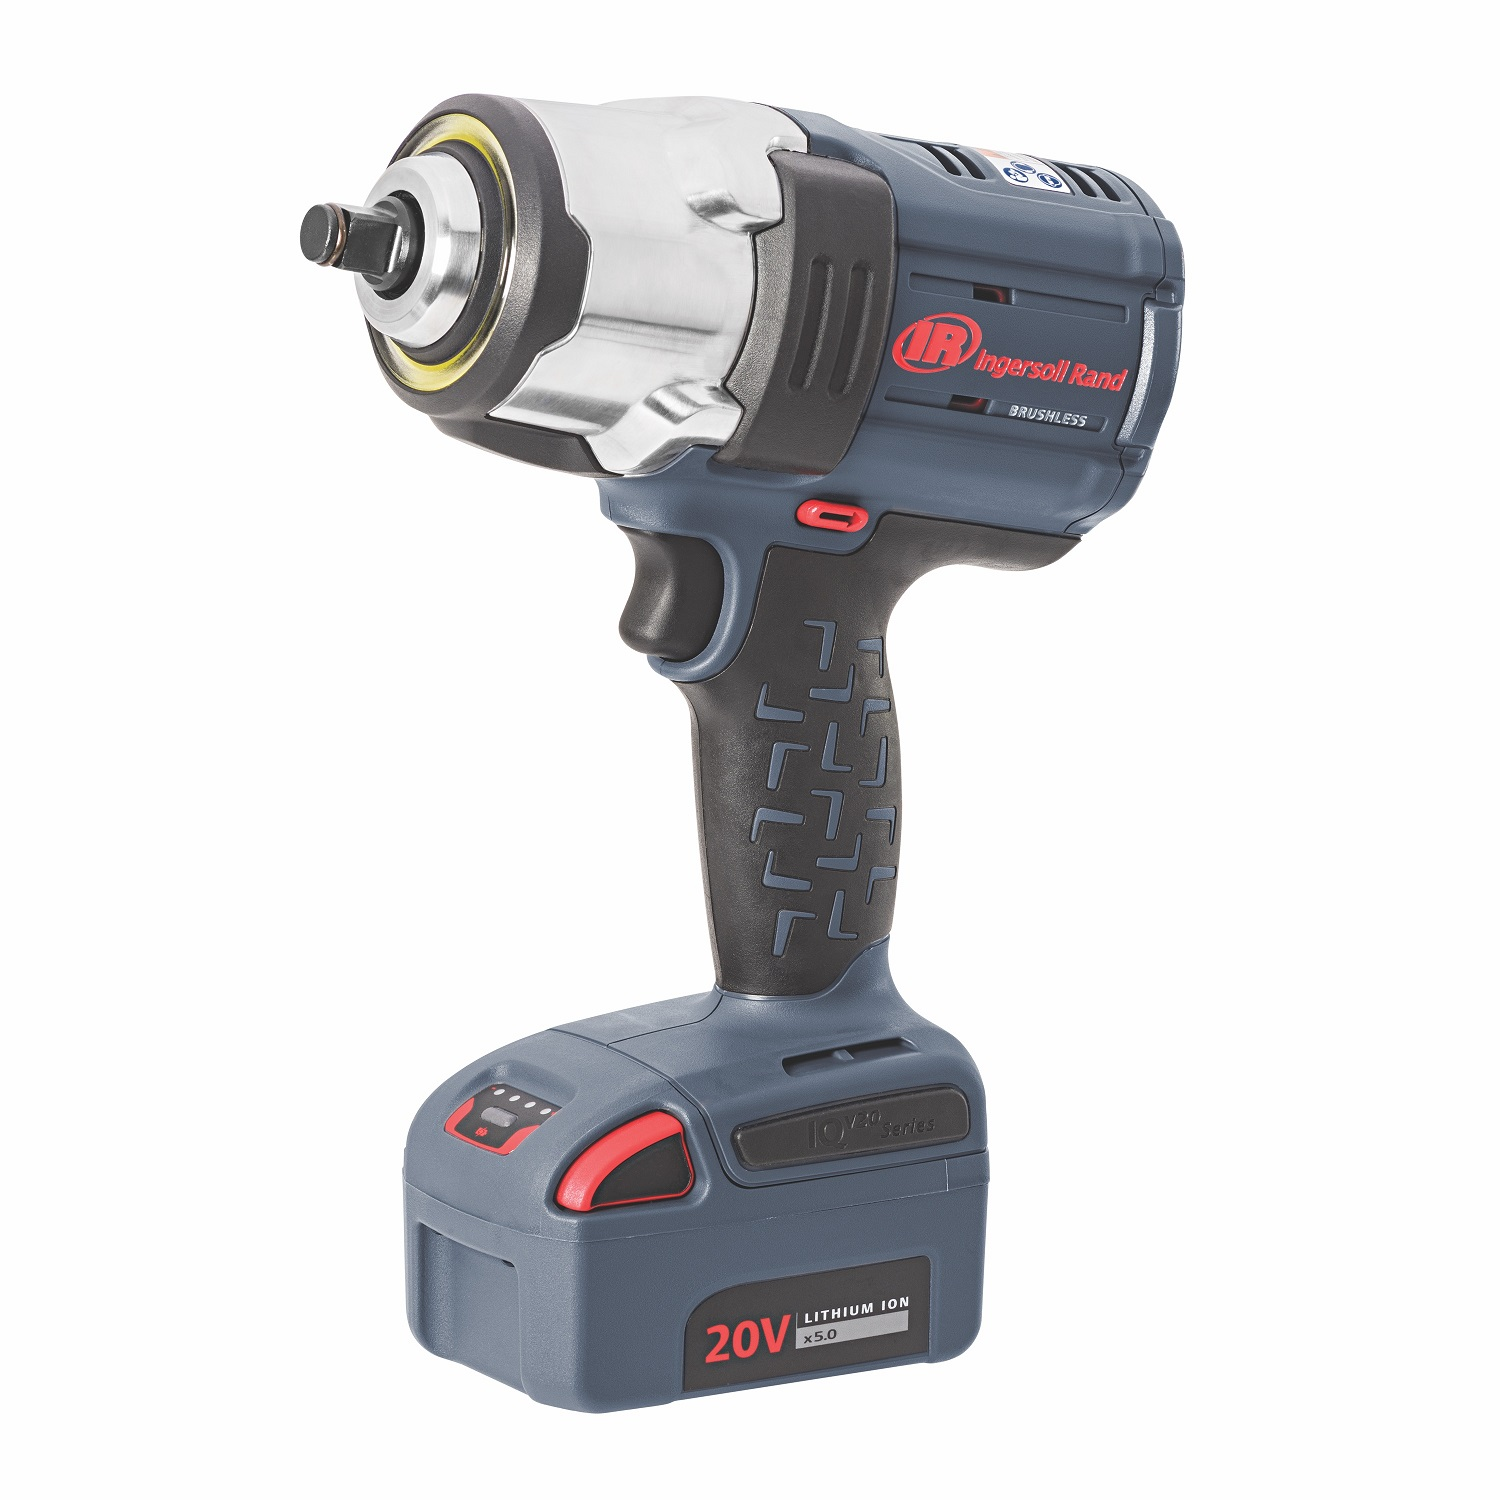 Ingersoll Rand Unveils a Brushless High-Torque 1/2-Inch Impact Wrench